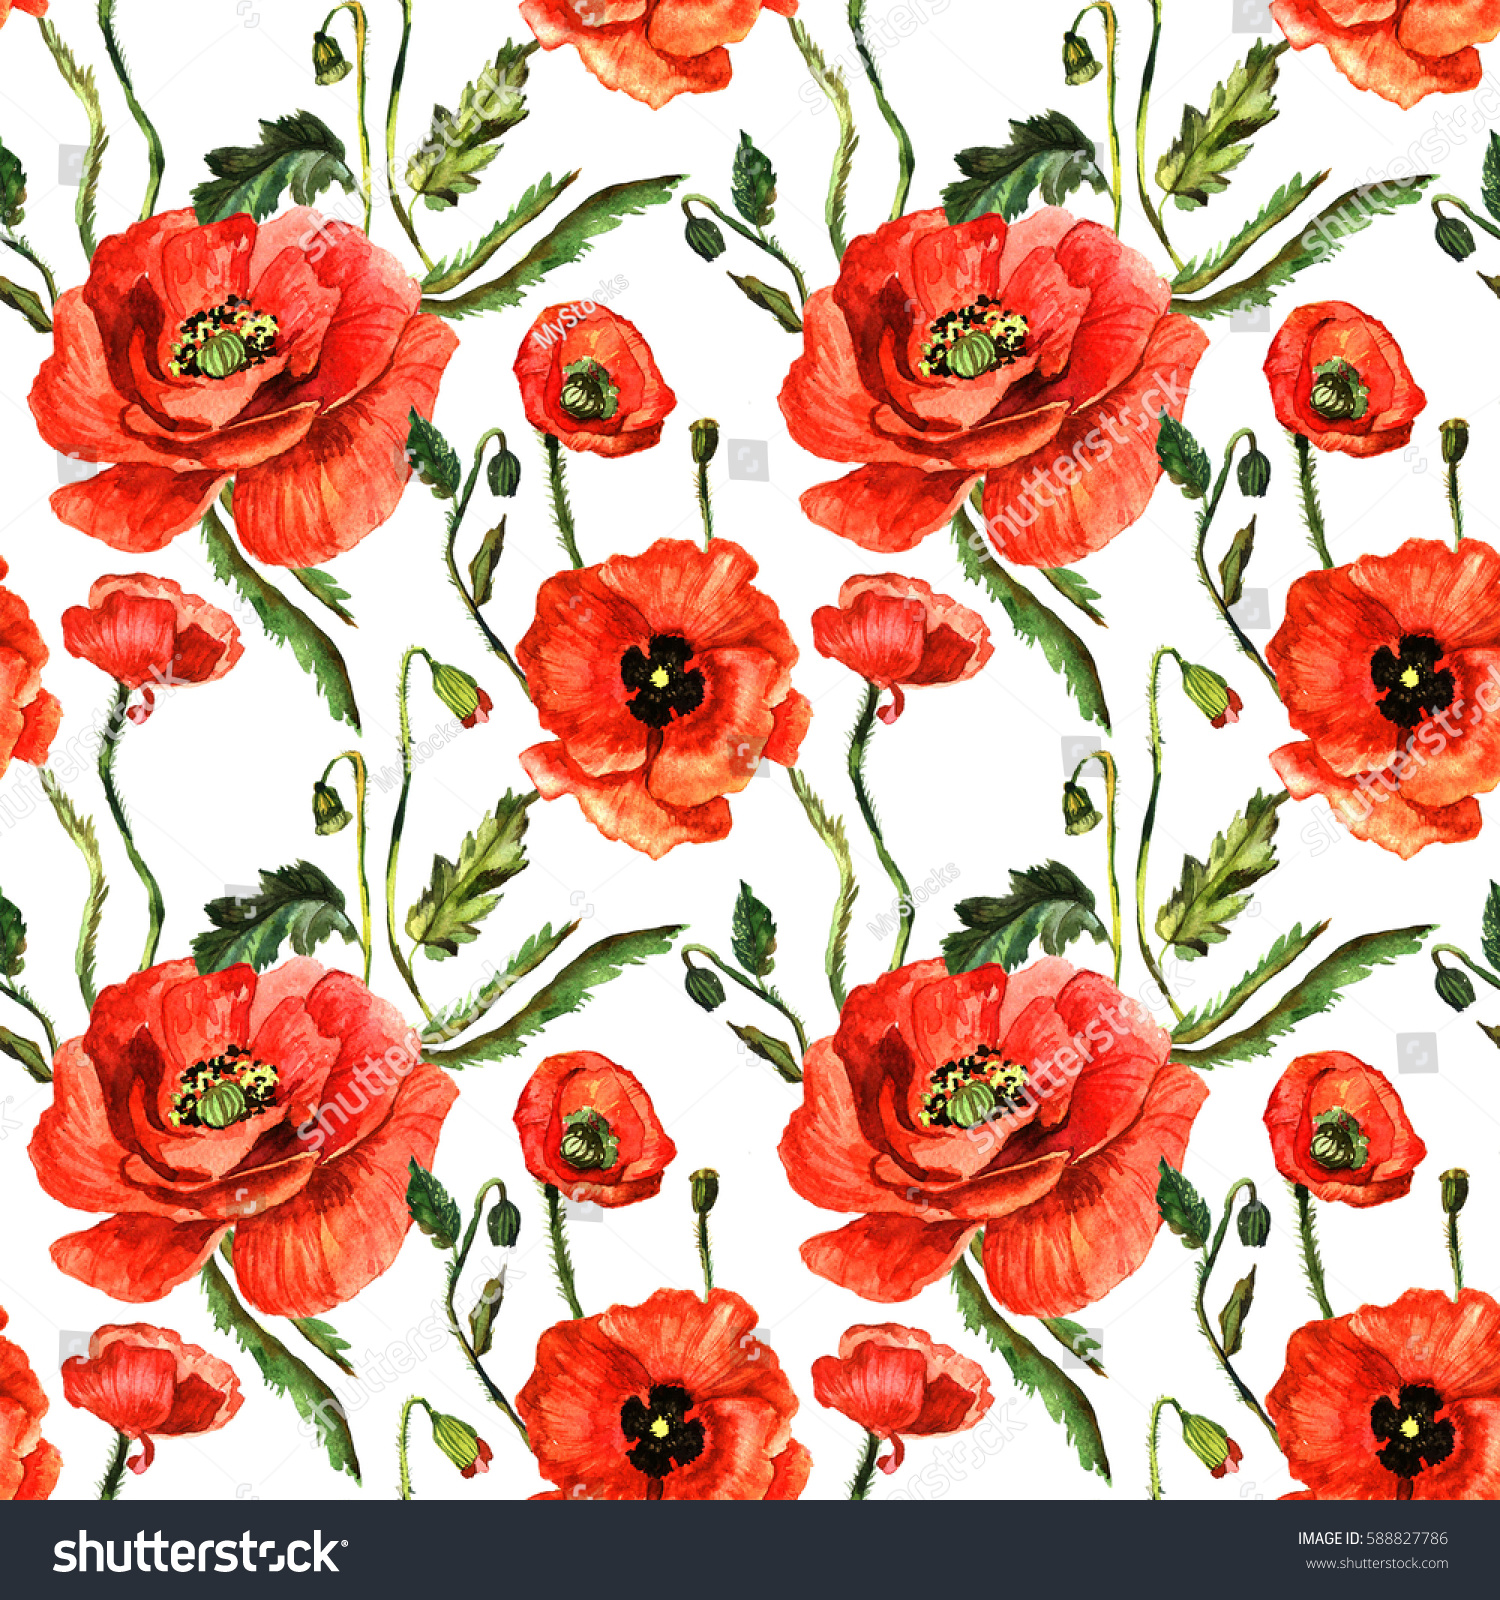 Wildflower poppy flower pattern watercolor style stock illustration wildflower poppy flower pattern in a watercolor style isolated full name of the plant mightylinksfo